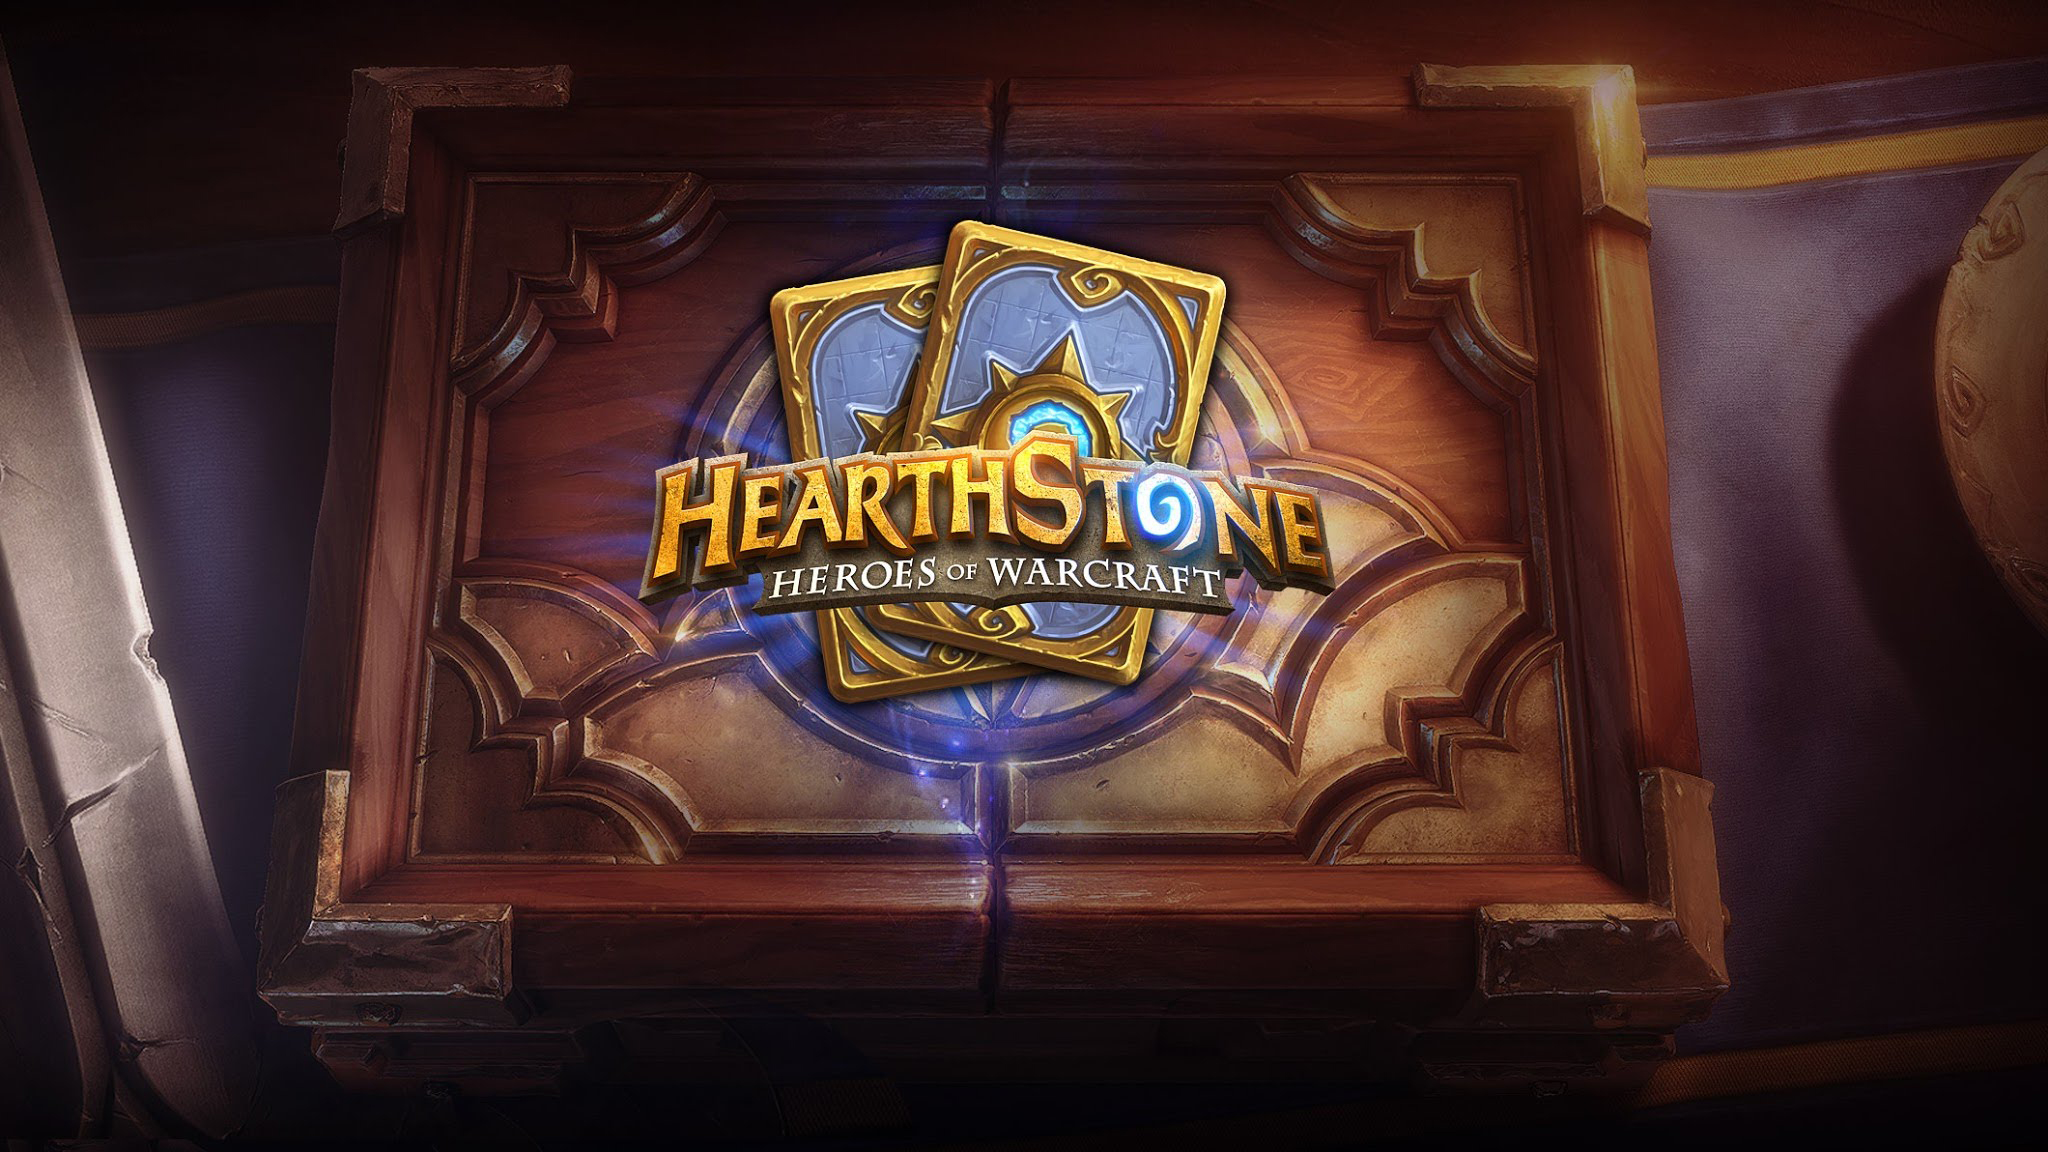 Hearthstone: Heroes of Warcraft update brings support for 64-bit iOS devices